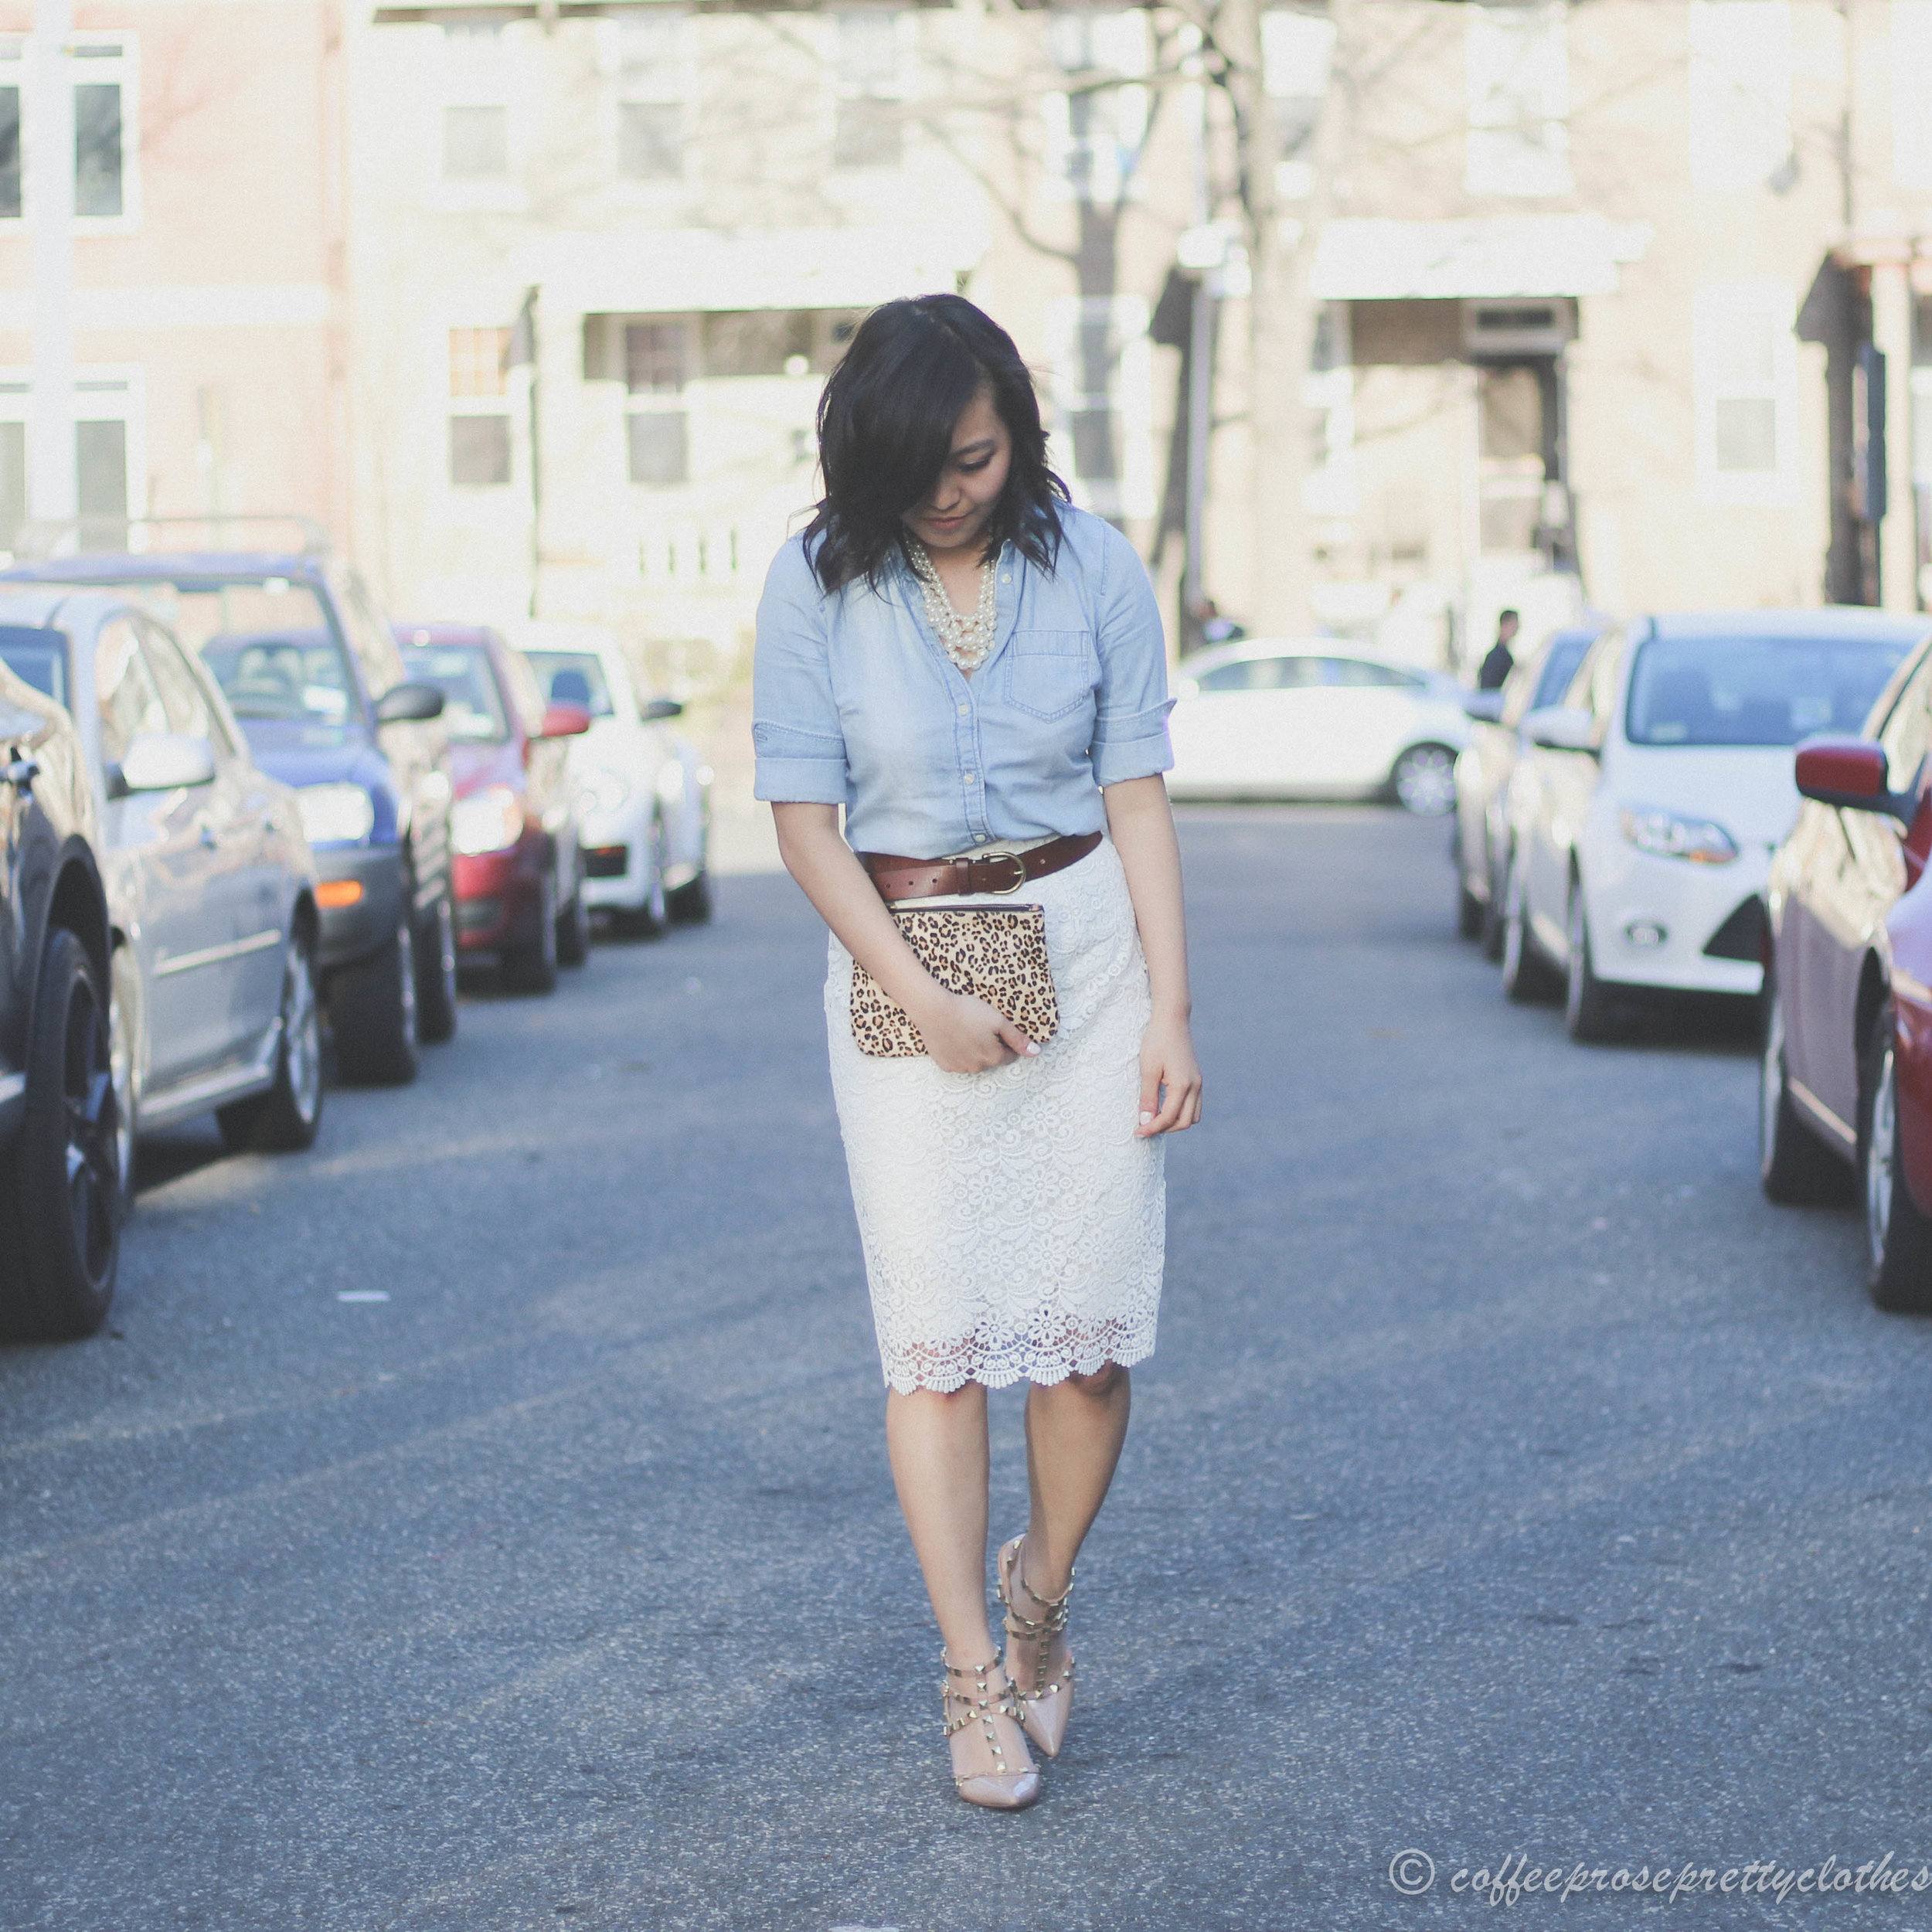 UNIQLO lace skirt, J.Crew Chambray shirt, J.Crew pearl necklace, Sole Society Tiia